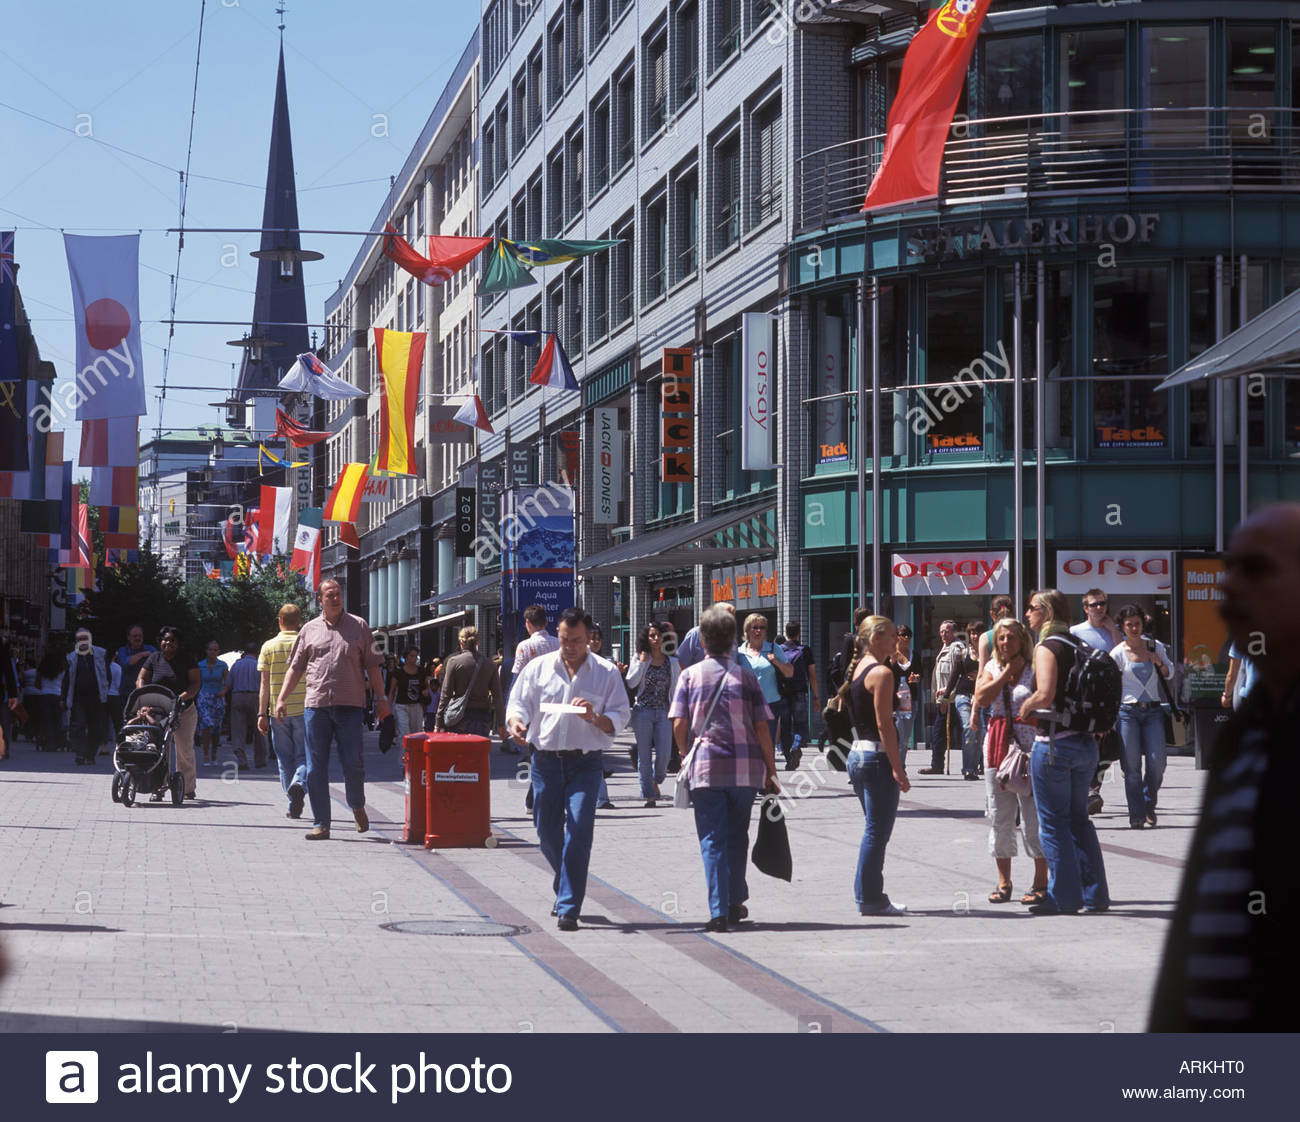 the spitalerstra e one of the biggest shopping streets in hamburg stock photo royalty free. Black Bedroom Furniture Sets. Home Design Ideas